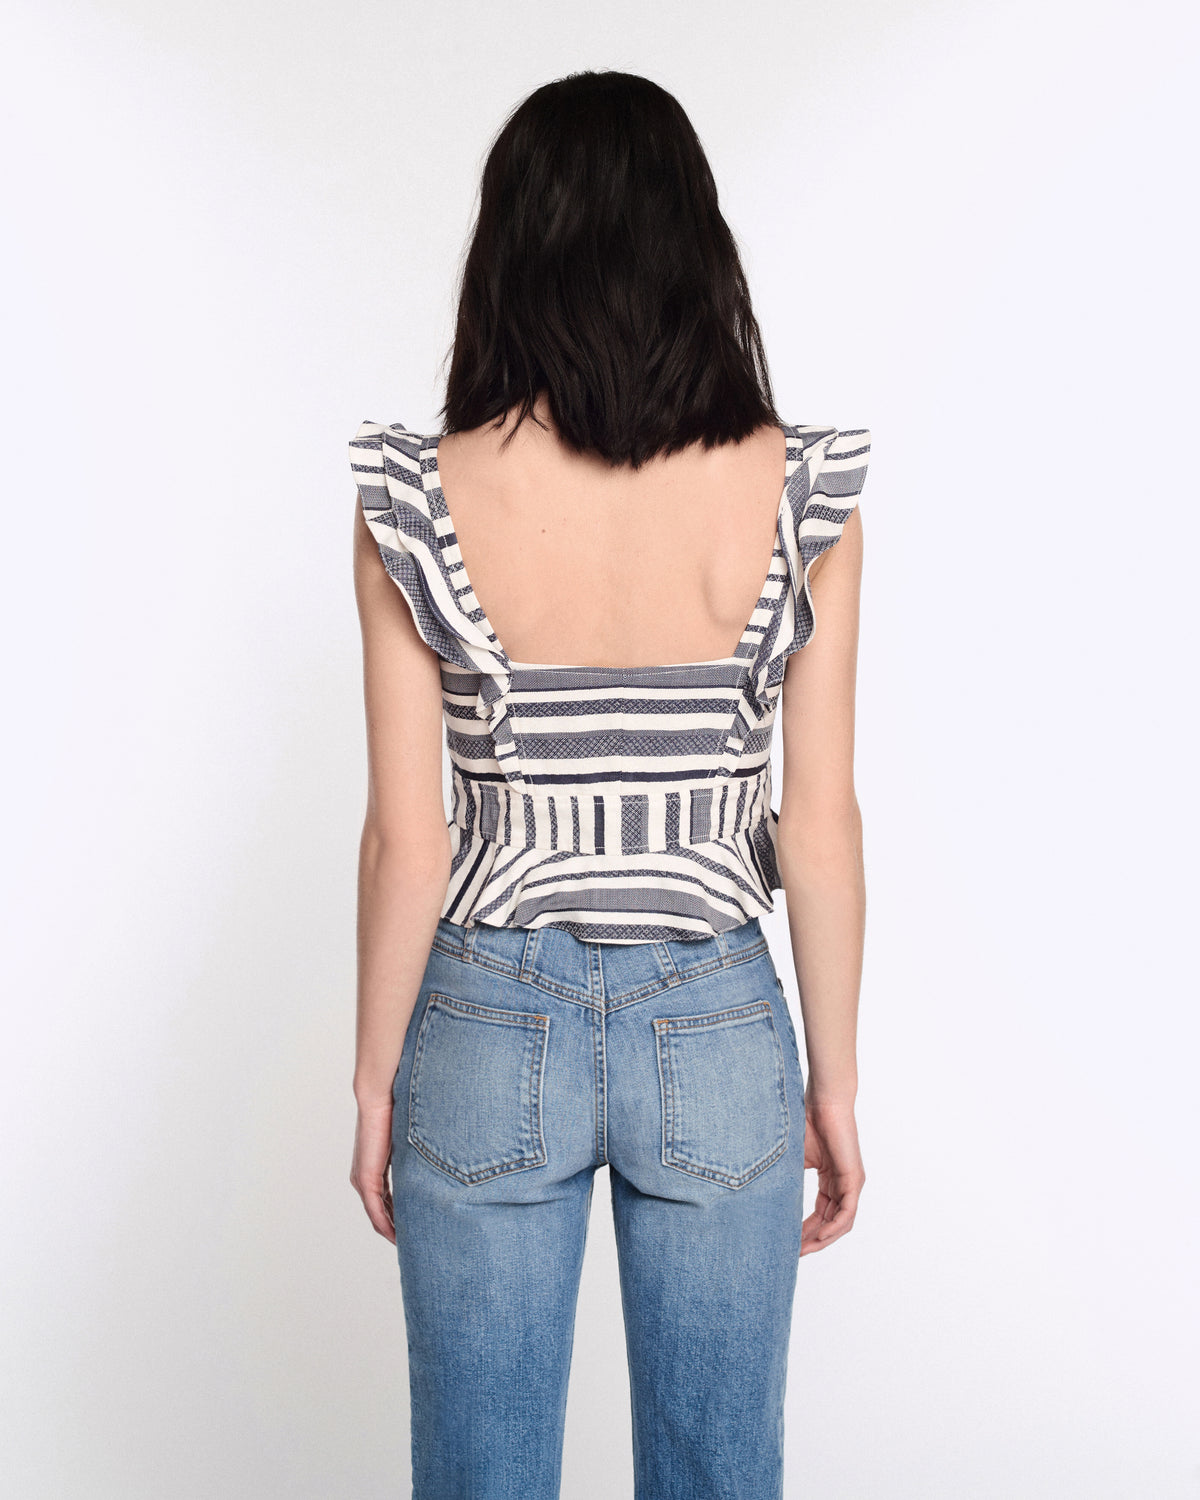 Ezra Top in Ivory with Navy Stripes